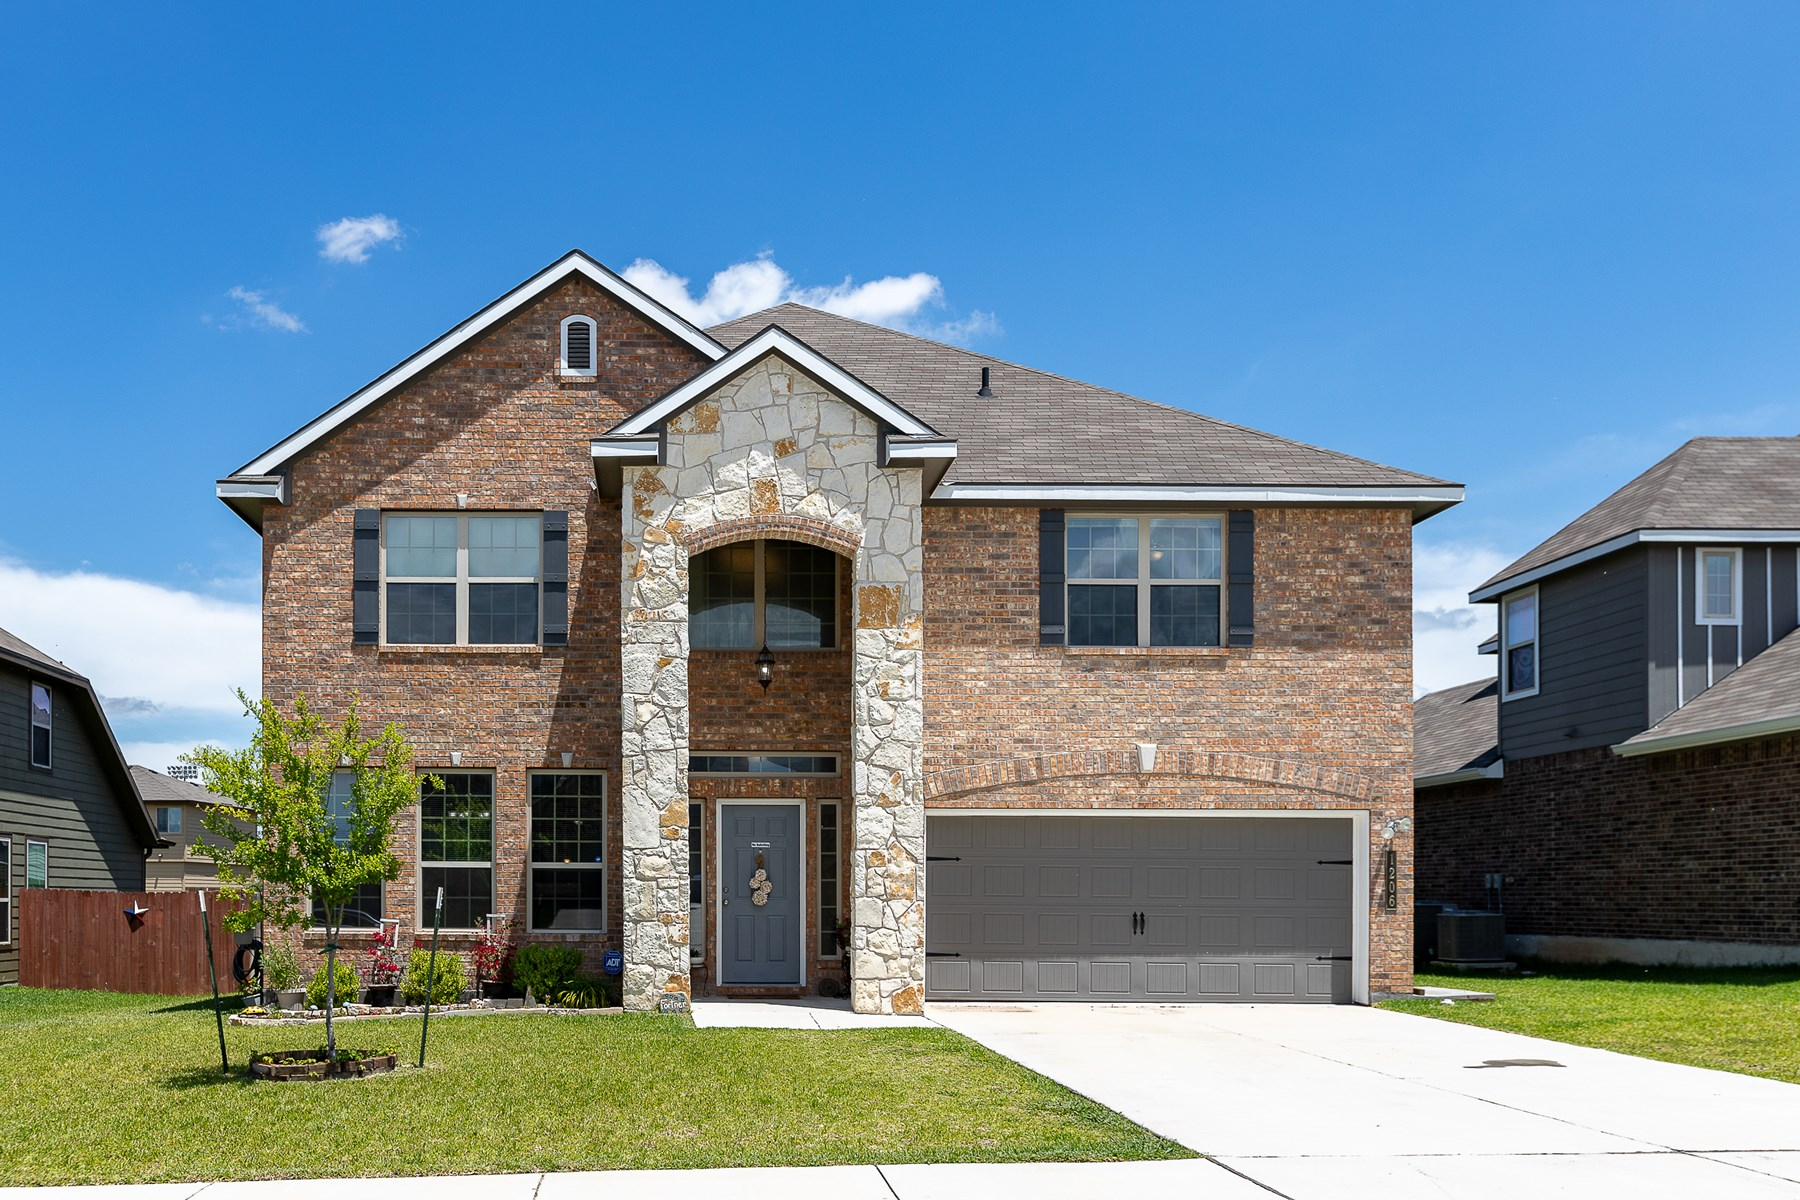 5 Bed, 3+ bath Copperas Cove TX Heartwood Park subdivision